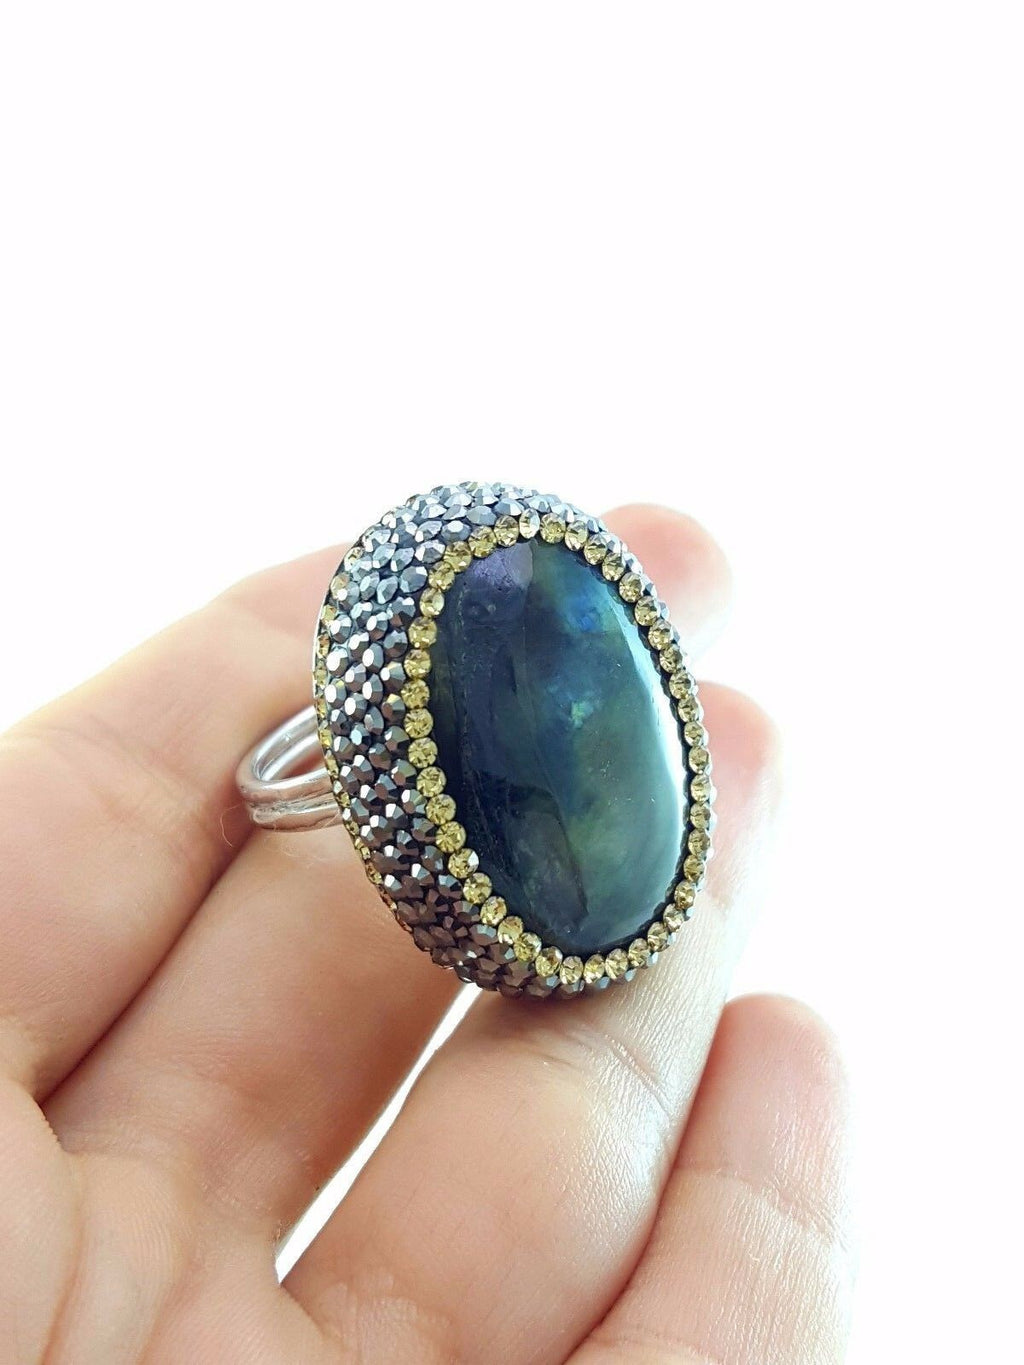 LABRADORITE DRUZY HAMMERED RING Turkish Wholesale Handmade 925 Sterling Silver Jewelry R1820 - Turkishsilverjewelry